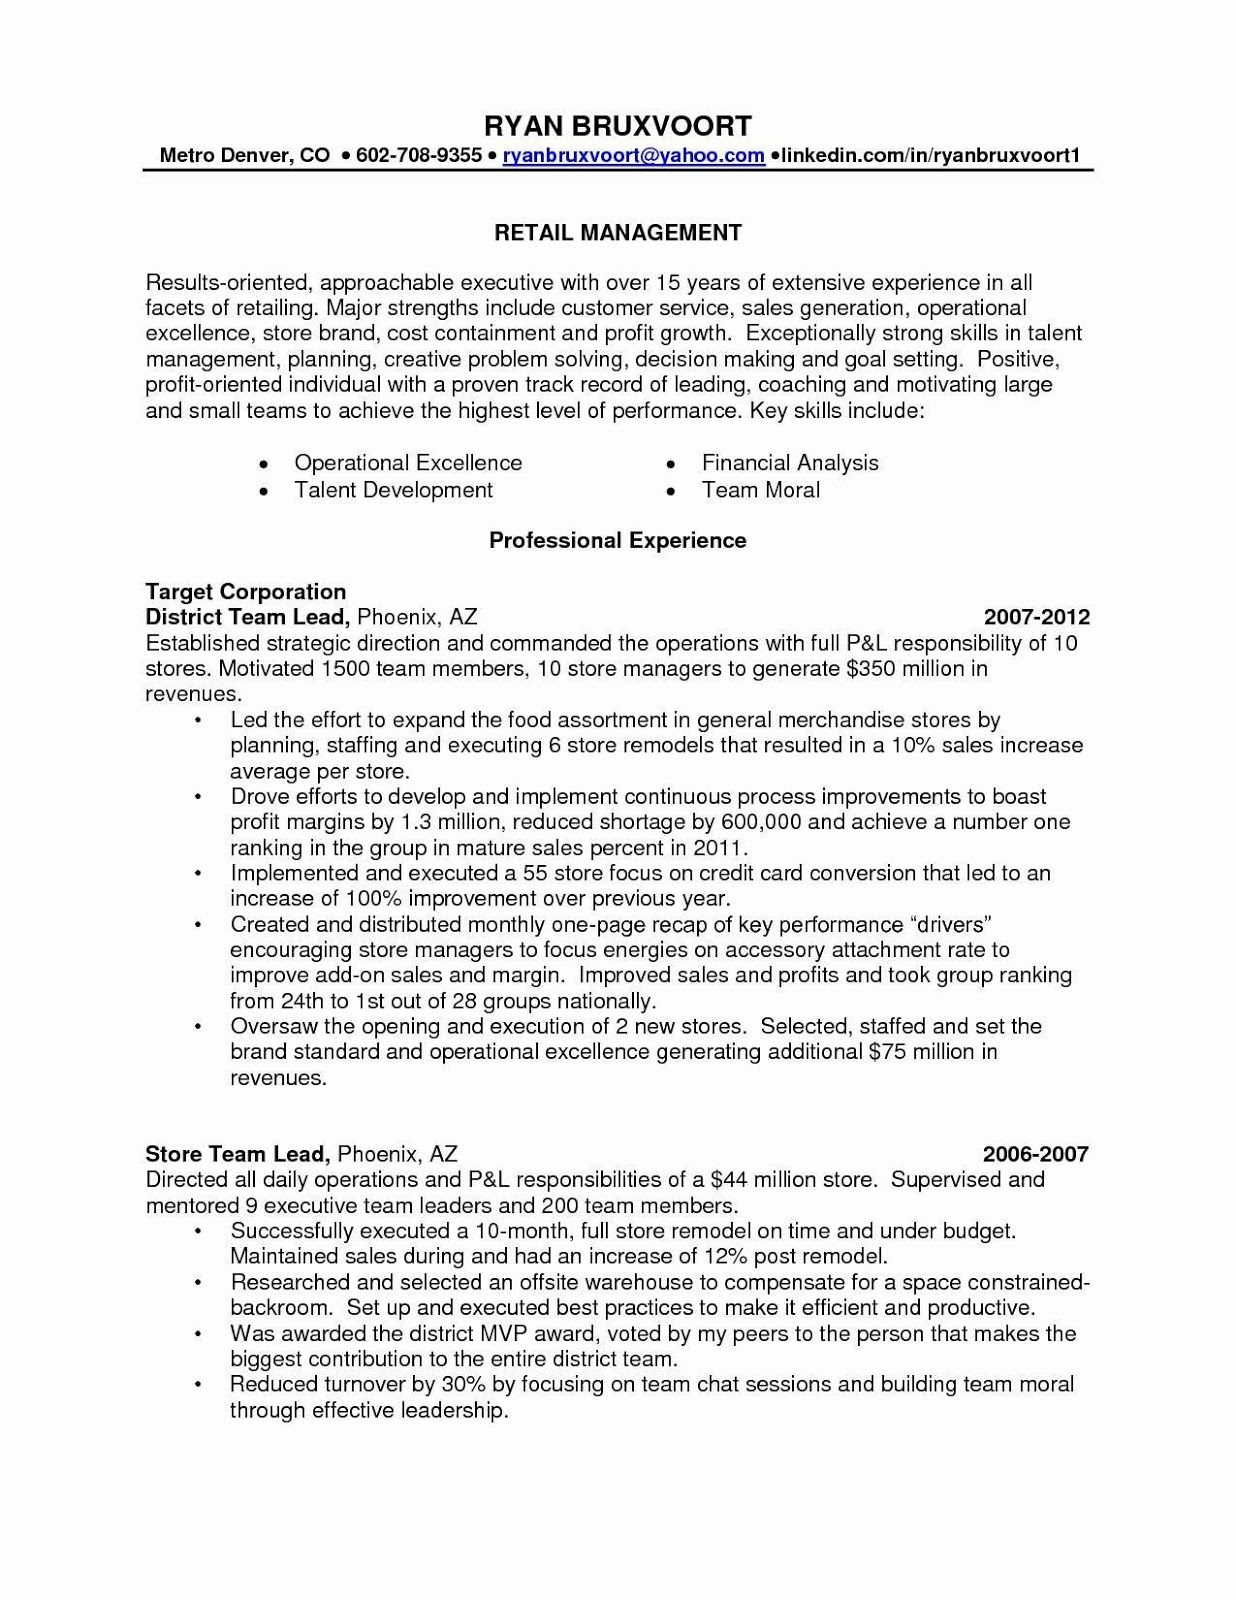 sales manager resume examples, sales manager resume examples 2020, sales manager resume examples 2019, sales manager resume examples 2018, sales manager resume examples 2017, sales manager resume examples australia, sales manager sample resume,